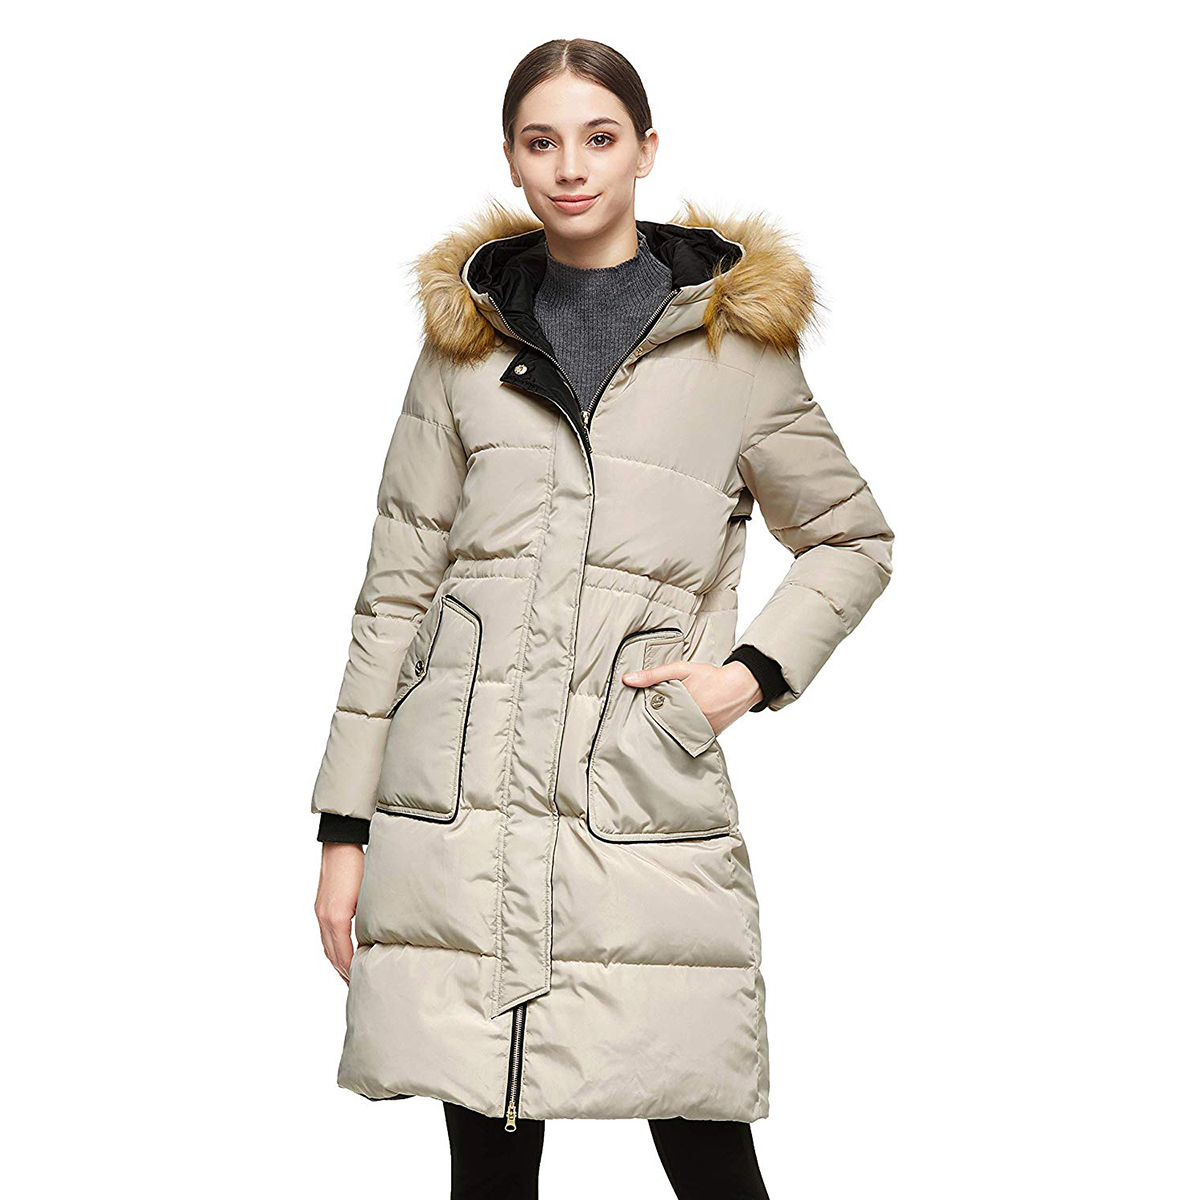 Orolay Women's Winter Casual Mid-Length Down Jacket